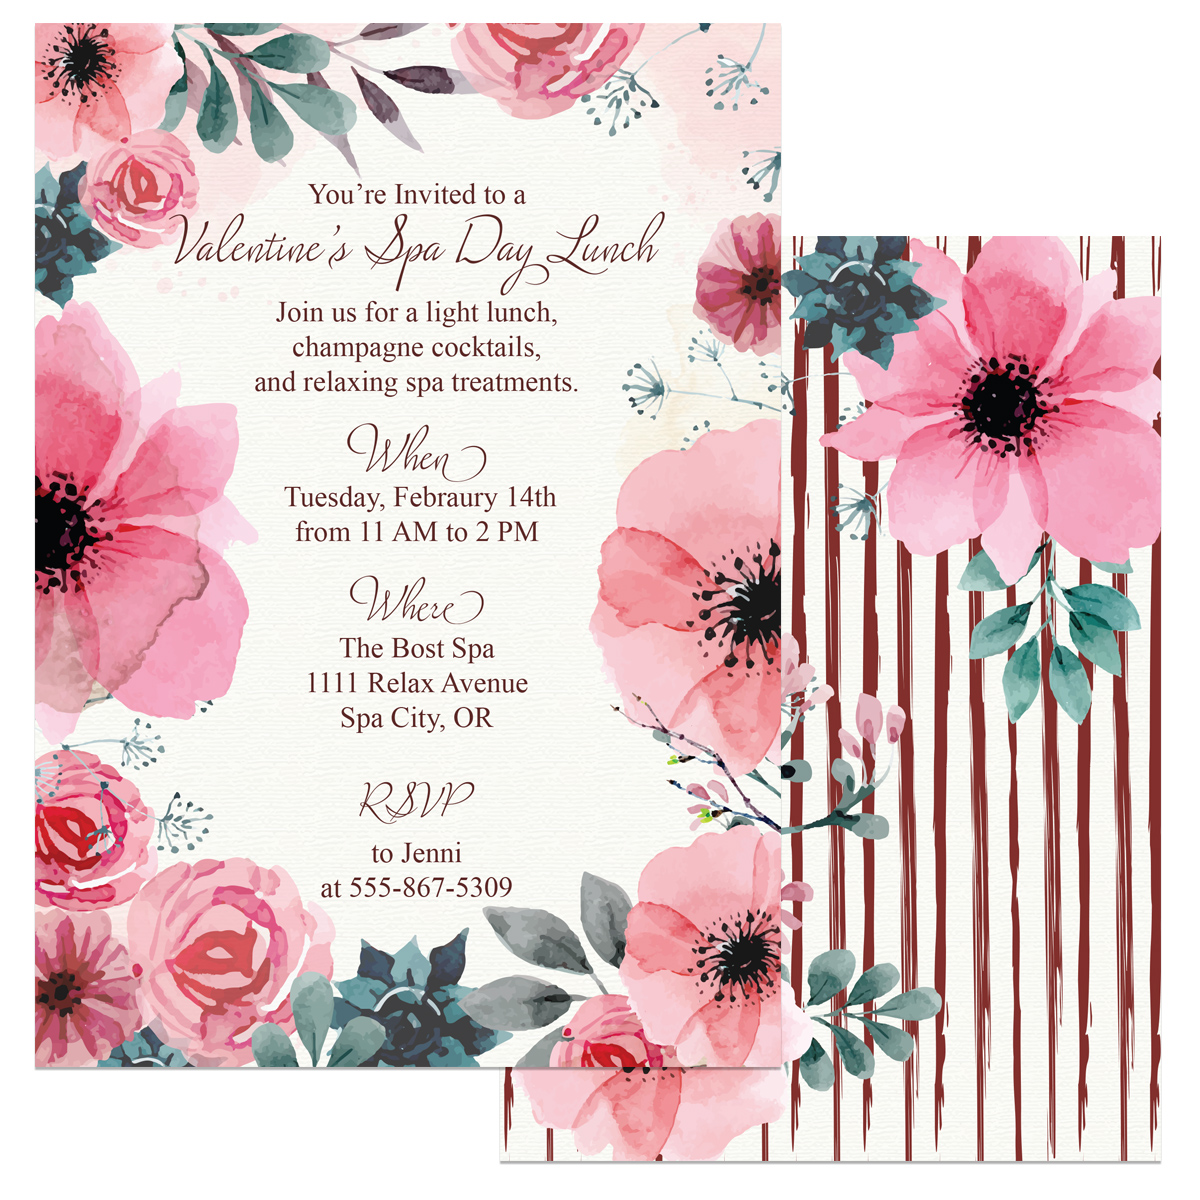 Valentines Day Spa Invitations - A Well Crafted Party